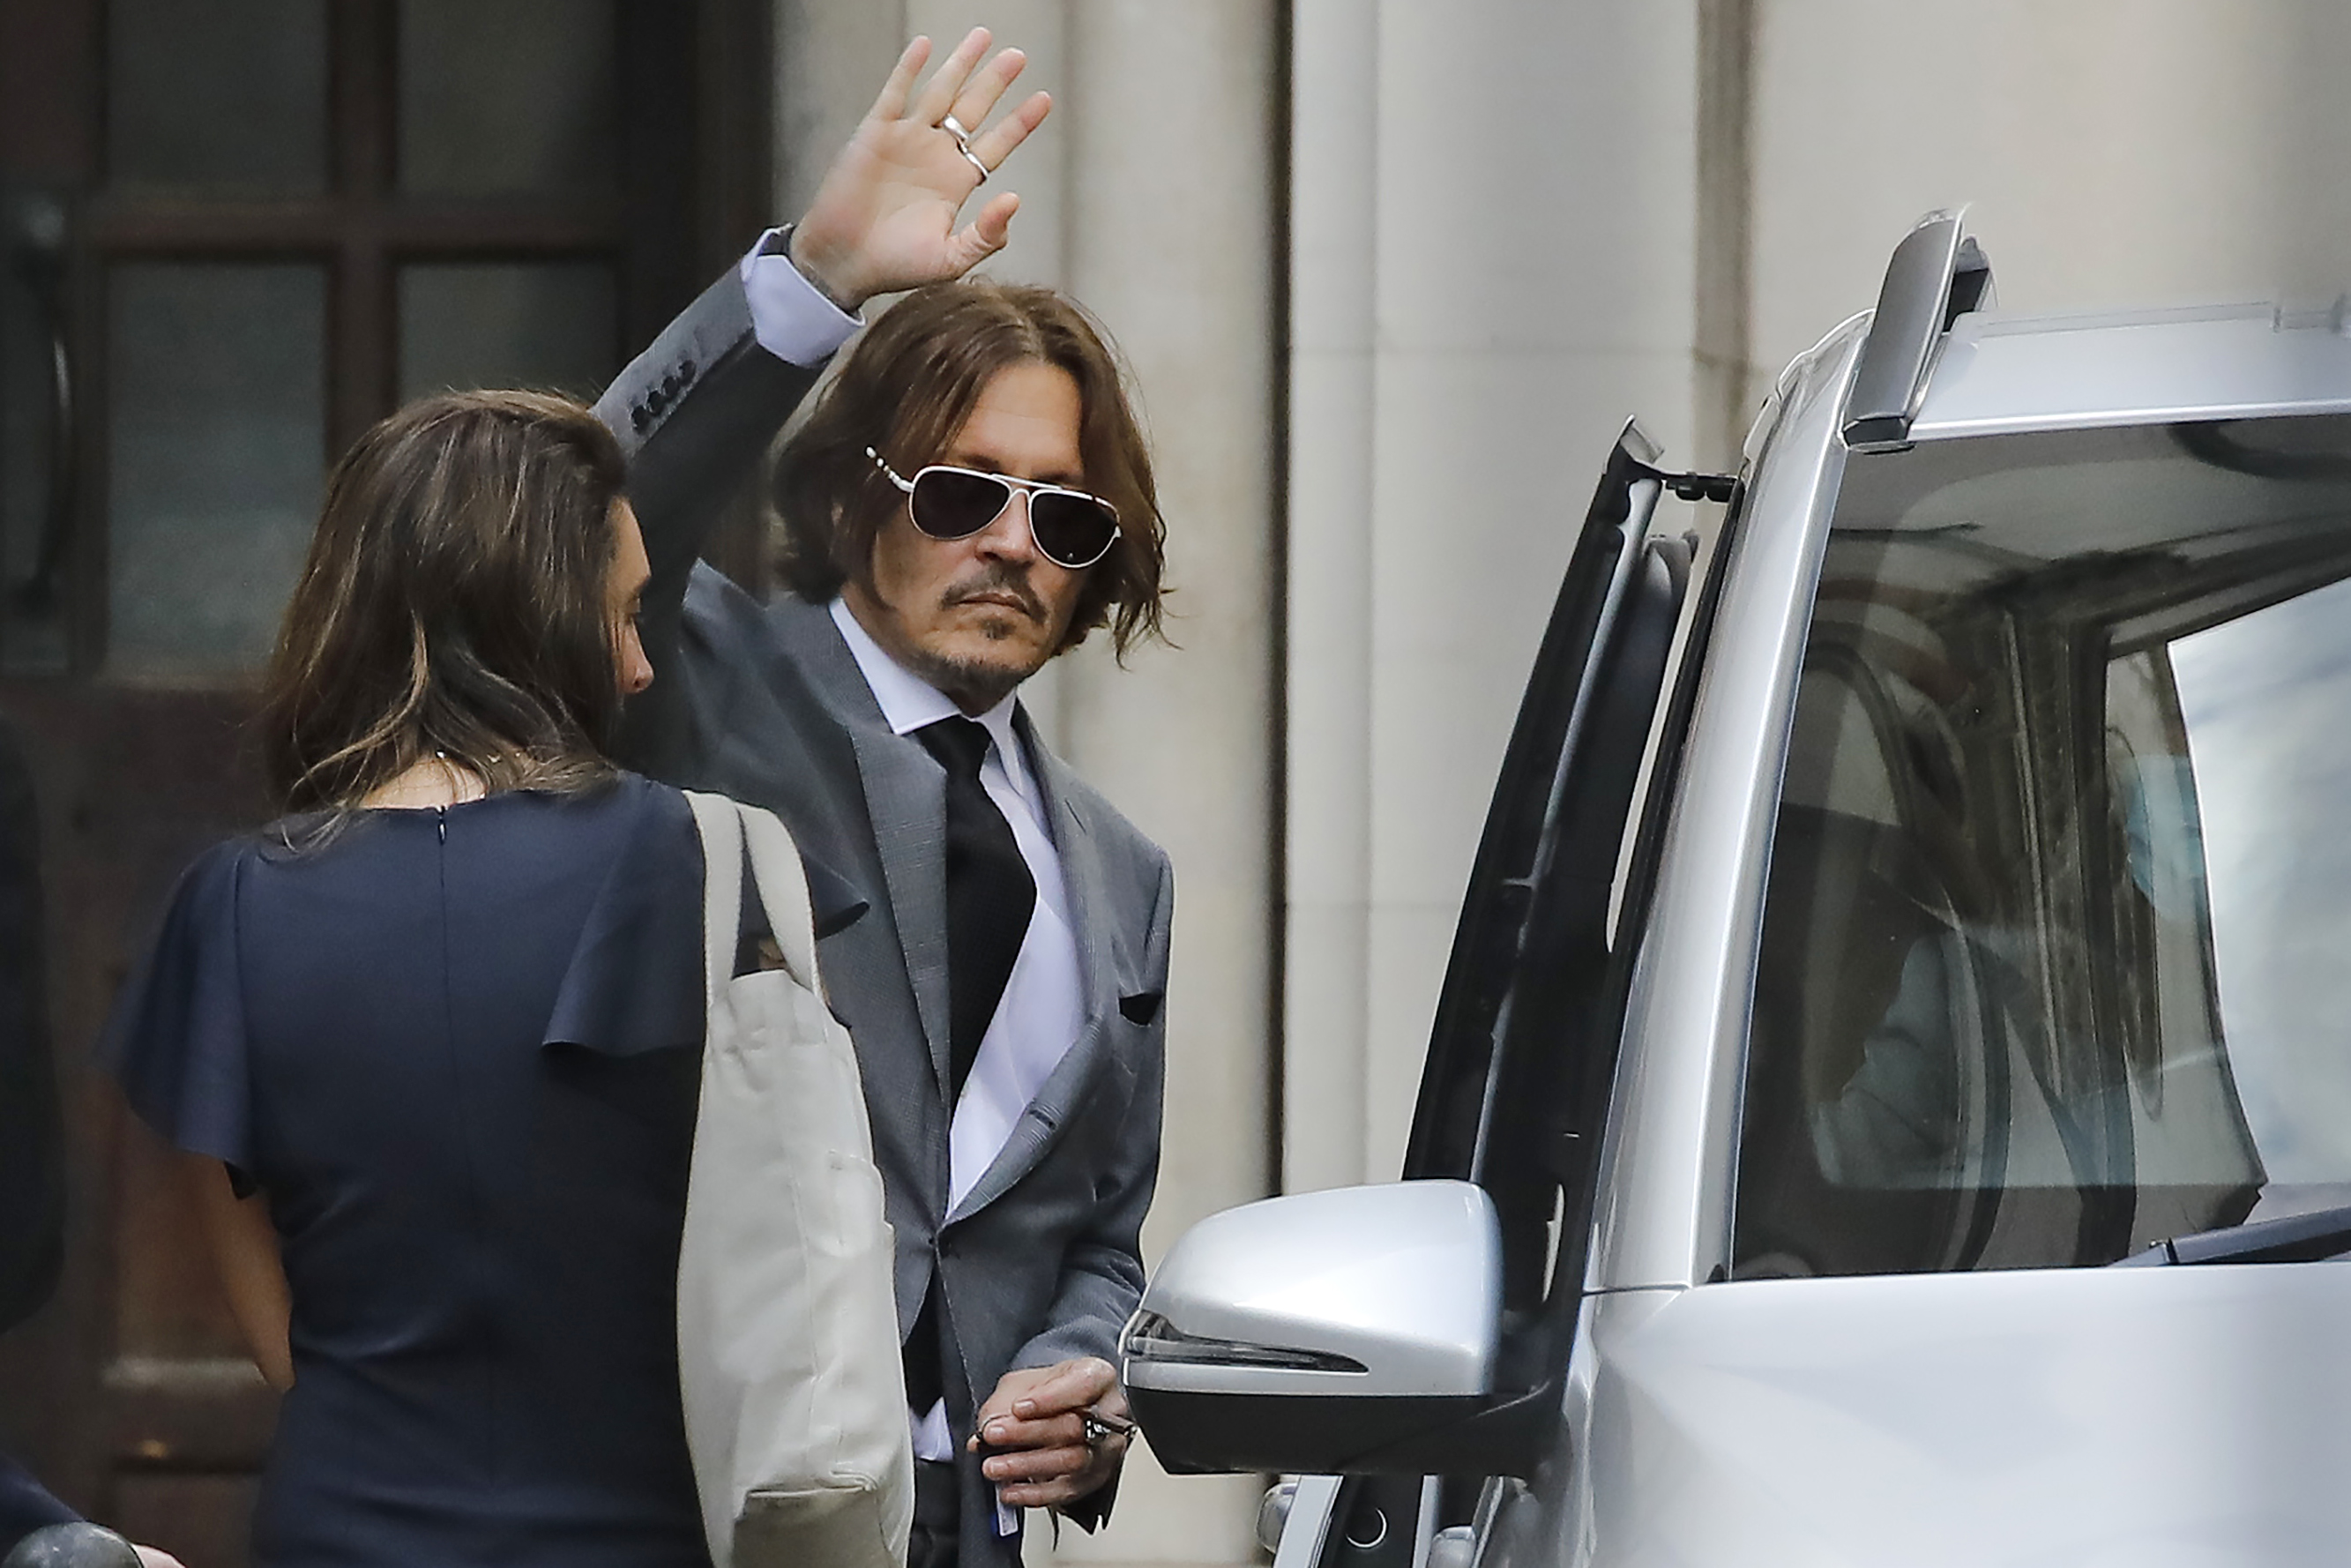 """US actor Johnny Depp waves as he leaves after the fifth day of his libel trial against News Group Newspapers (NGN), at the High Court in London, on July 13, 2020. - Depp is suing the publishers of The Sun and the author of the article for the claims that called him a """"wife-beater"""" in April 2018. (Photo by TOLGA AKMEN/AFP via Getty Images)"""